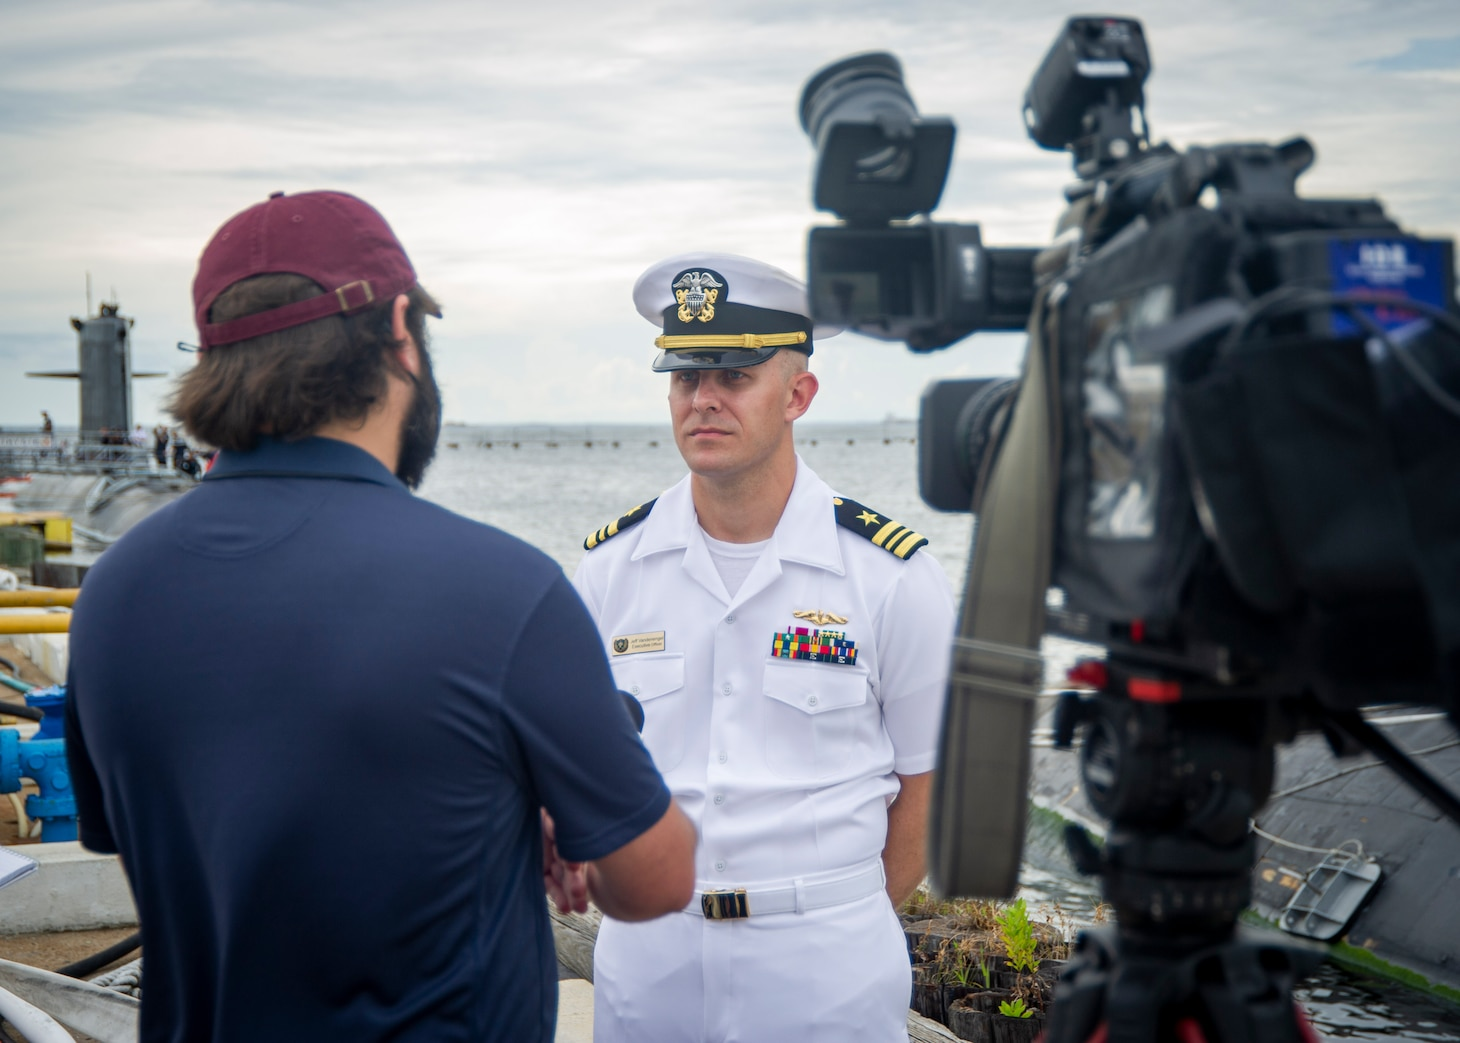 Lt. Cmdr. Jeff Vandenengel, executive officer of the Virginia-class fast-attack submarine USS John Warner (SSN 785), conducts a media interview after the arrival of the French submarine FNS Améthyste (S605) at Naval Station Norfolk, Sept. 16, 2021